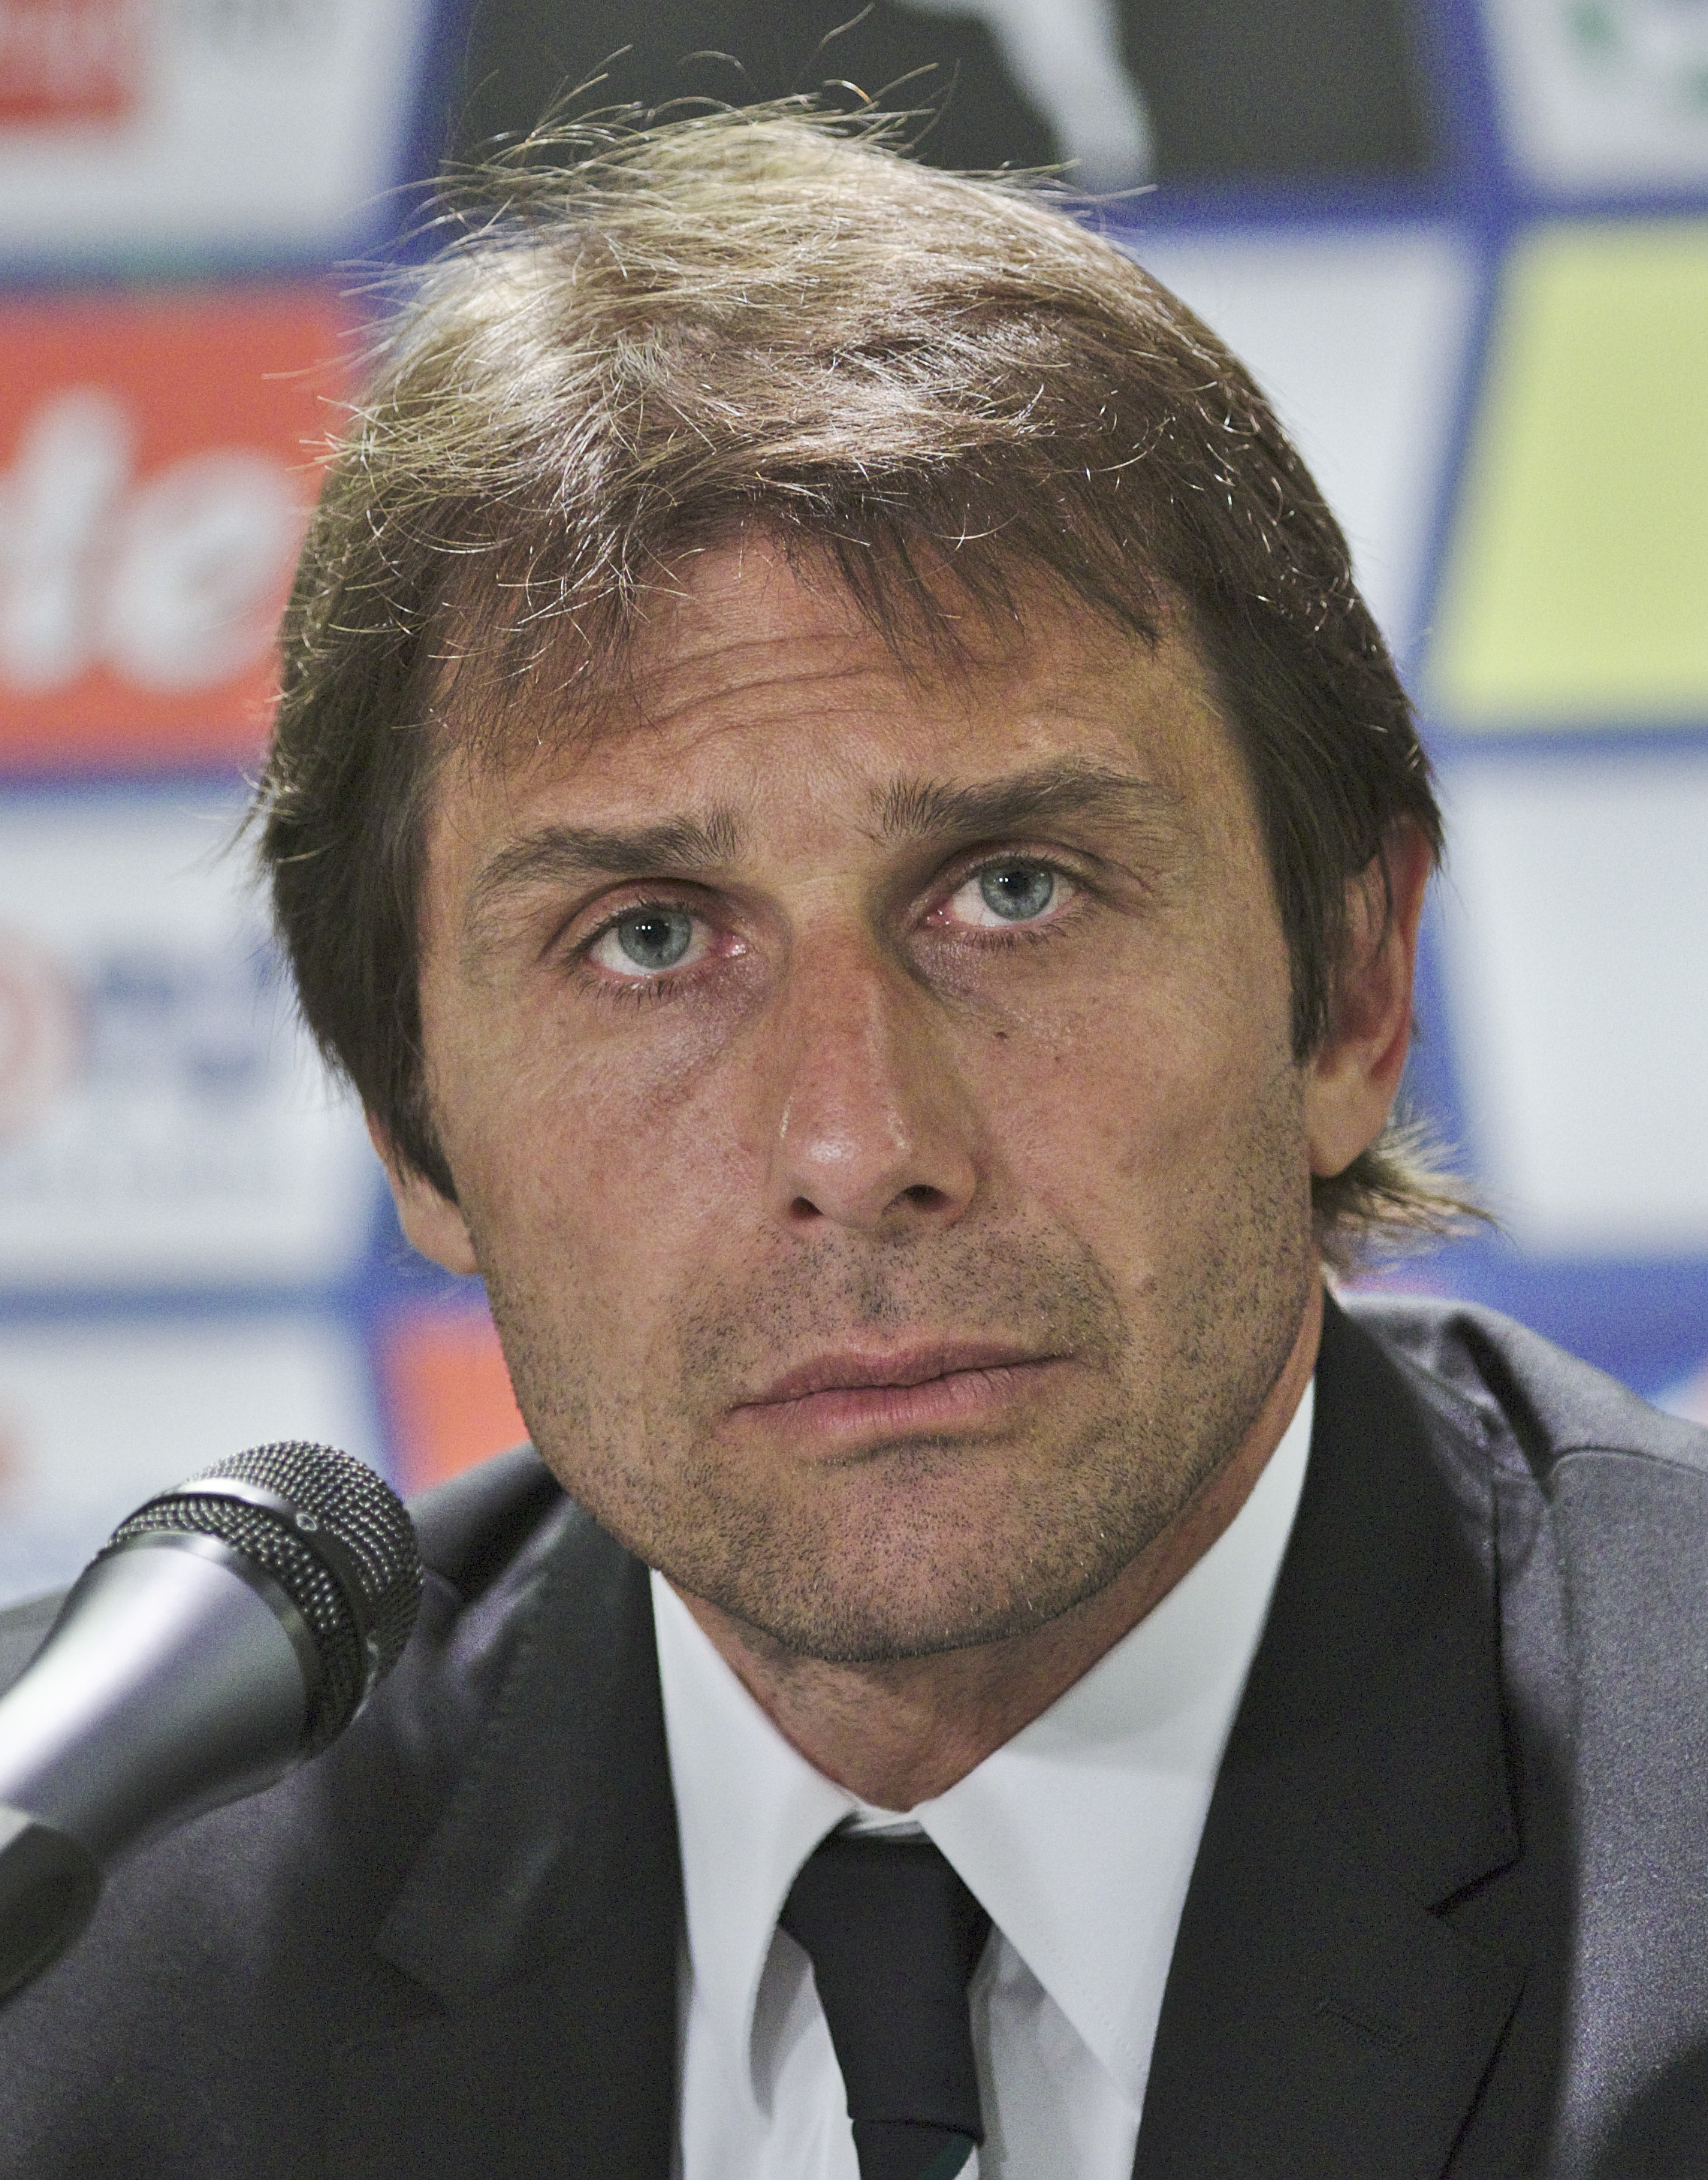 The 49-year old son of father (?) and mother(?) Antonio Conte in 2018 photo. Antonio Conte earned a  million dollar salary - leaving the net worth at 2.5 million in 2018